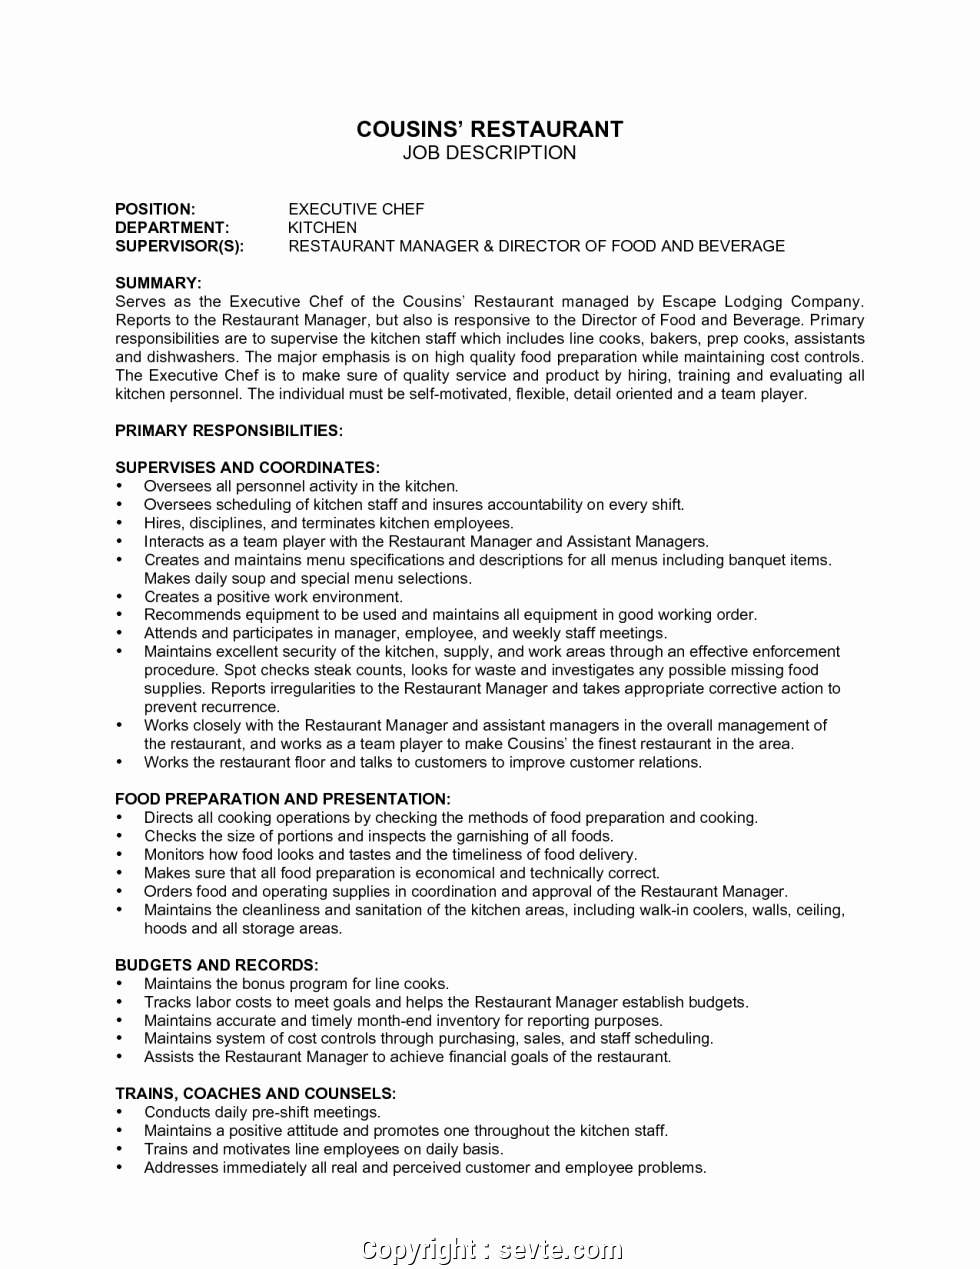 Cook Description for Resume Awesome Simple Restaurant Description Sample 9 Hostess Job